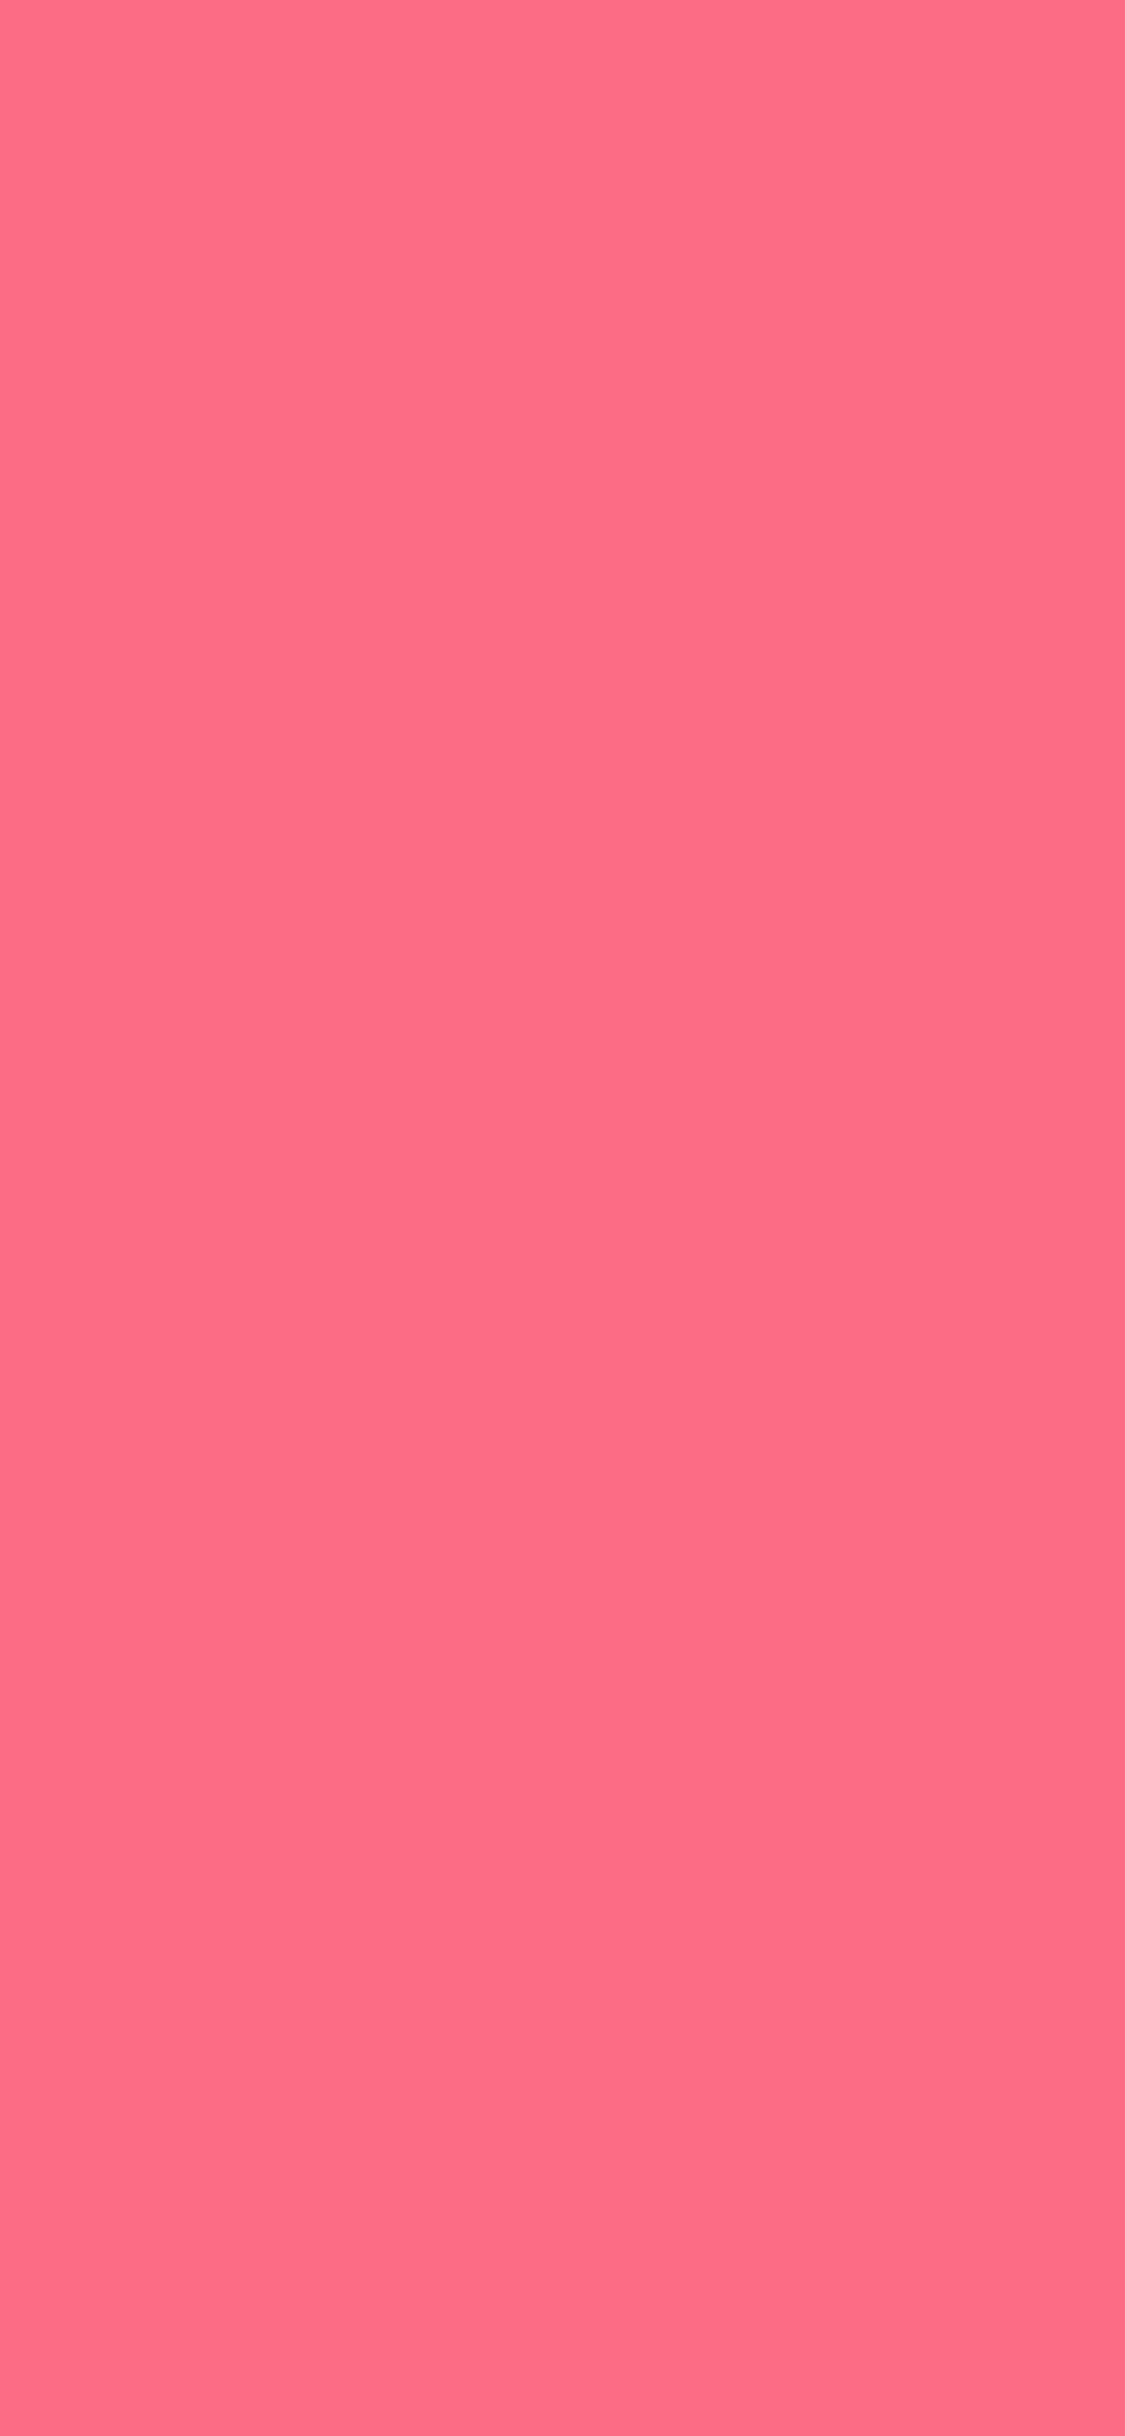 1125x2436 Wild Watermelon Solid Color Background